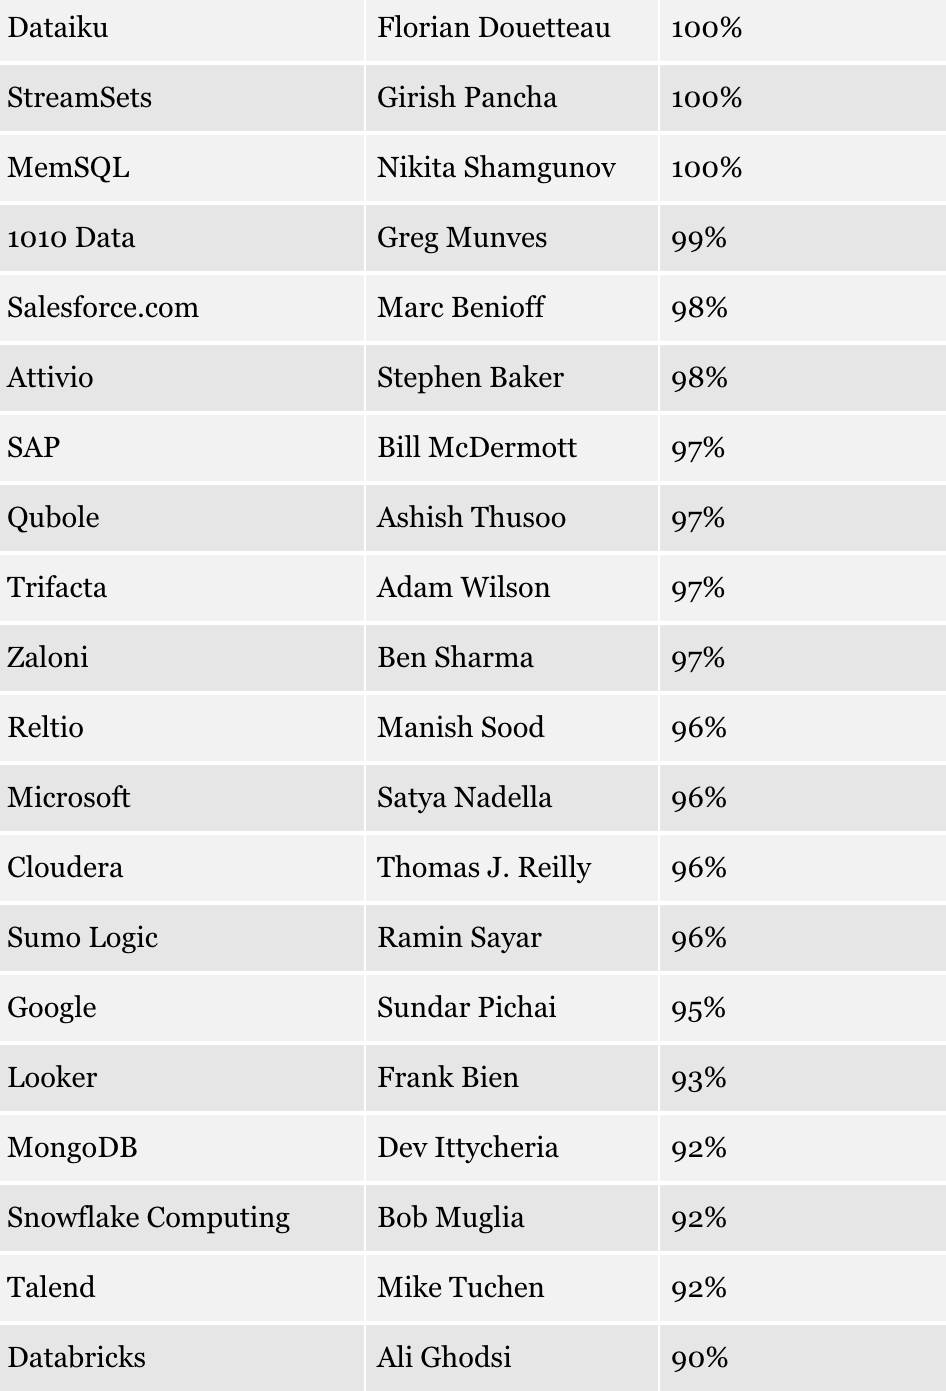 "Source - Forbes article ""The Best Big Data Companies And CEOs To Work For In 2018 Based On Glassdoor"" author Louis Columbus, May 2018"